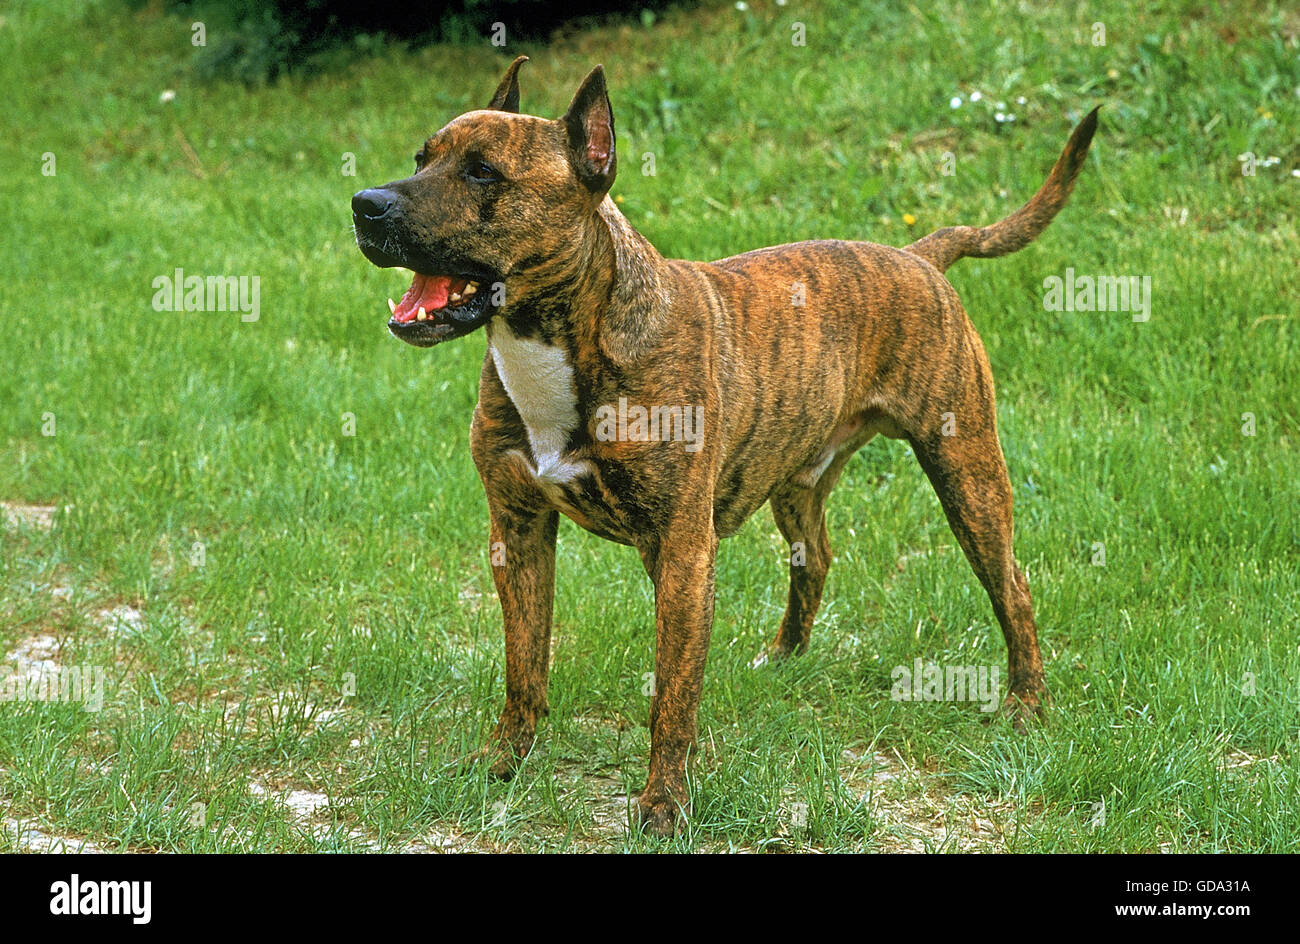 American Staffordshire Terrier (Old Standard Breed with Cut Ears), Dog on Grass - Stock Image